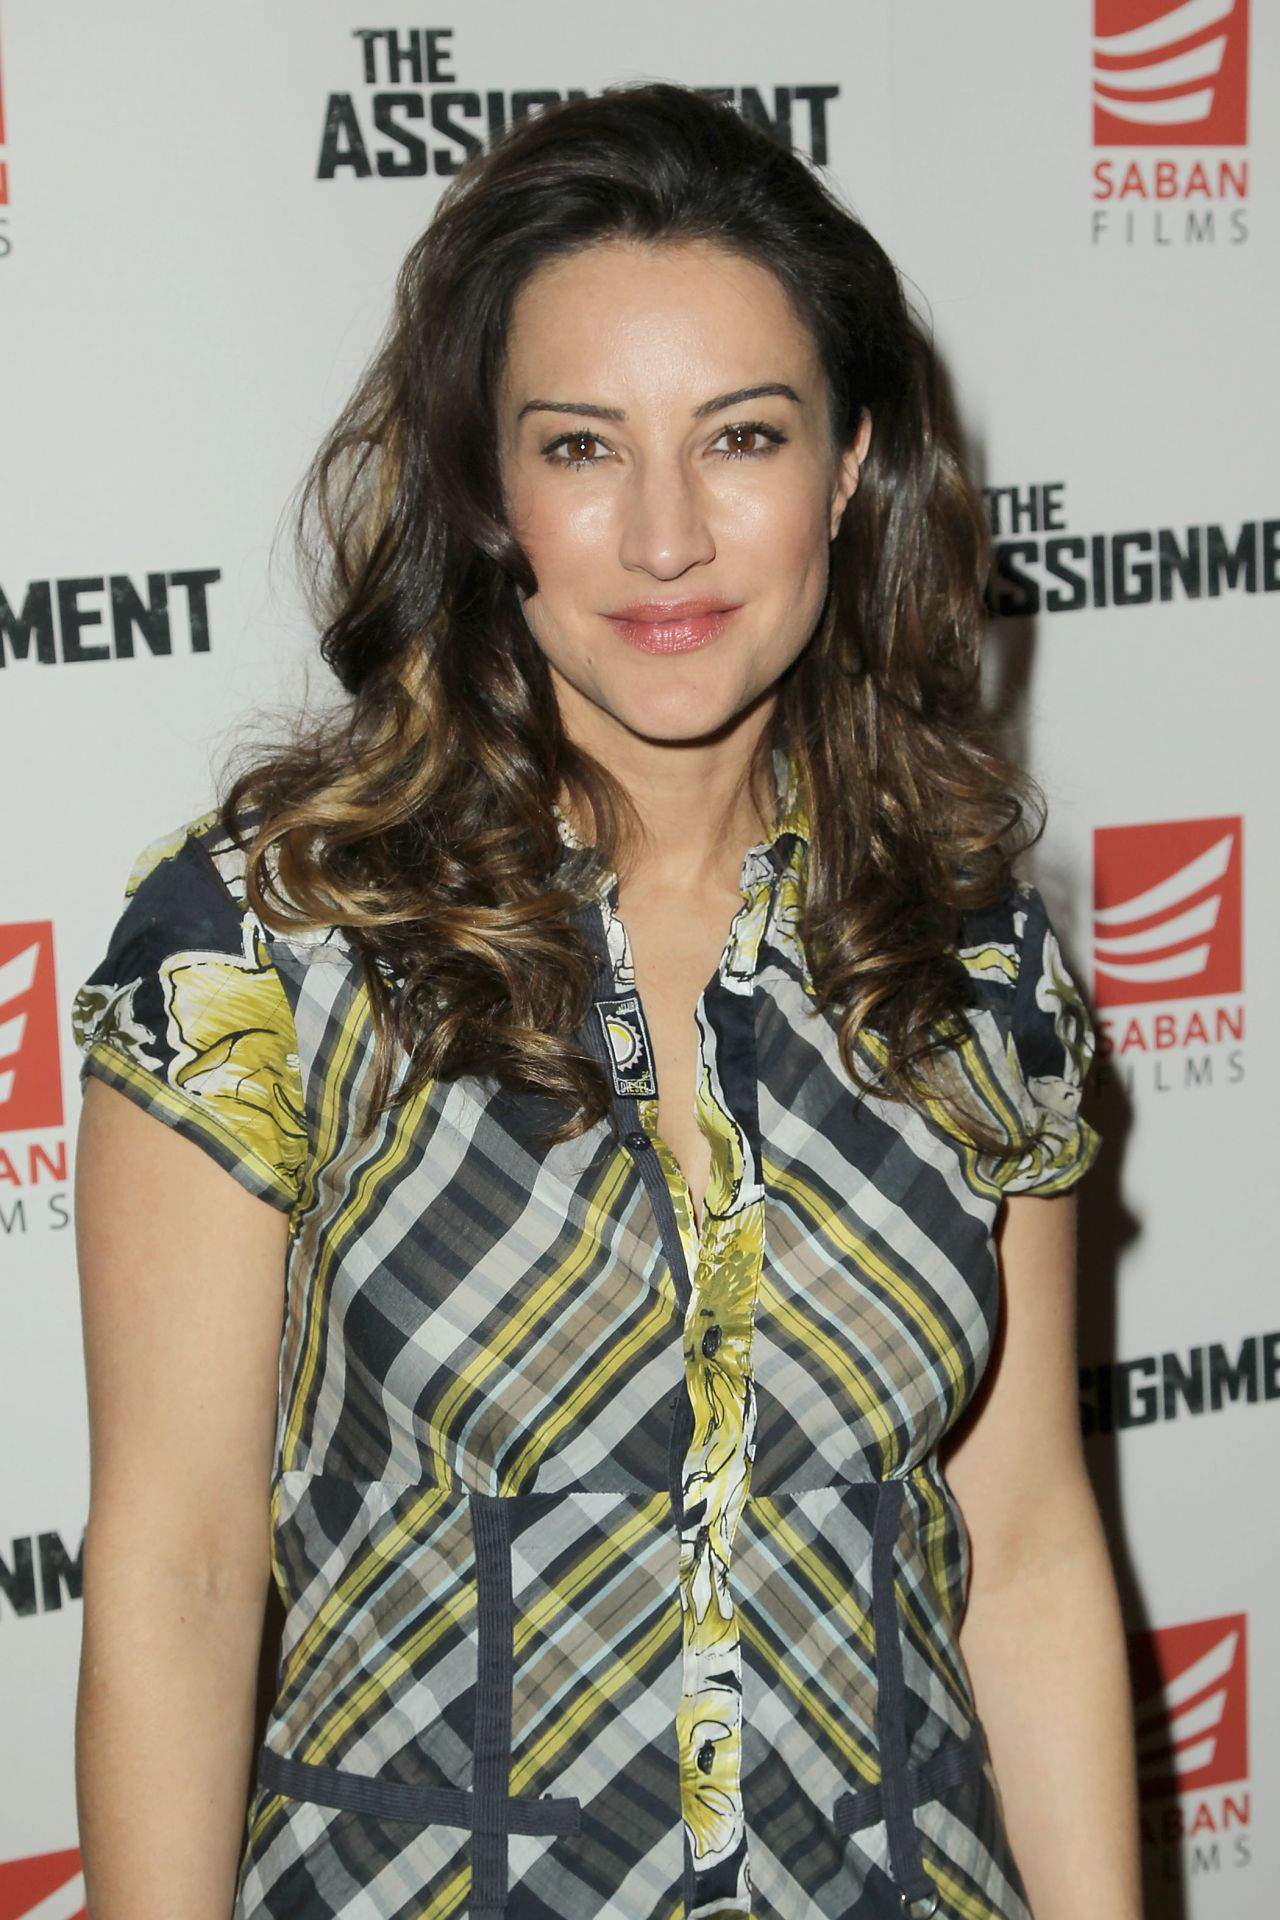 America Olivo - The Assignment Movie Screening in New